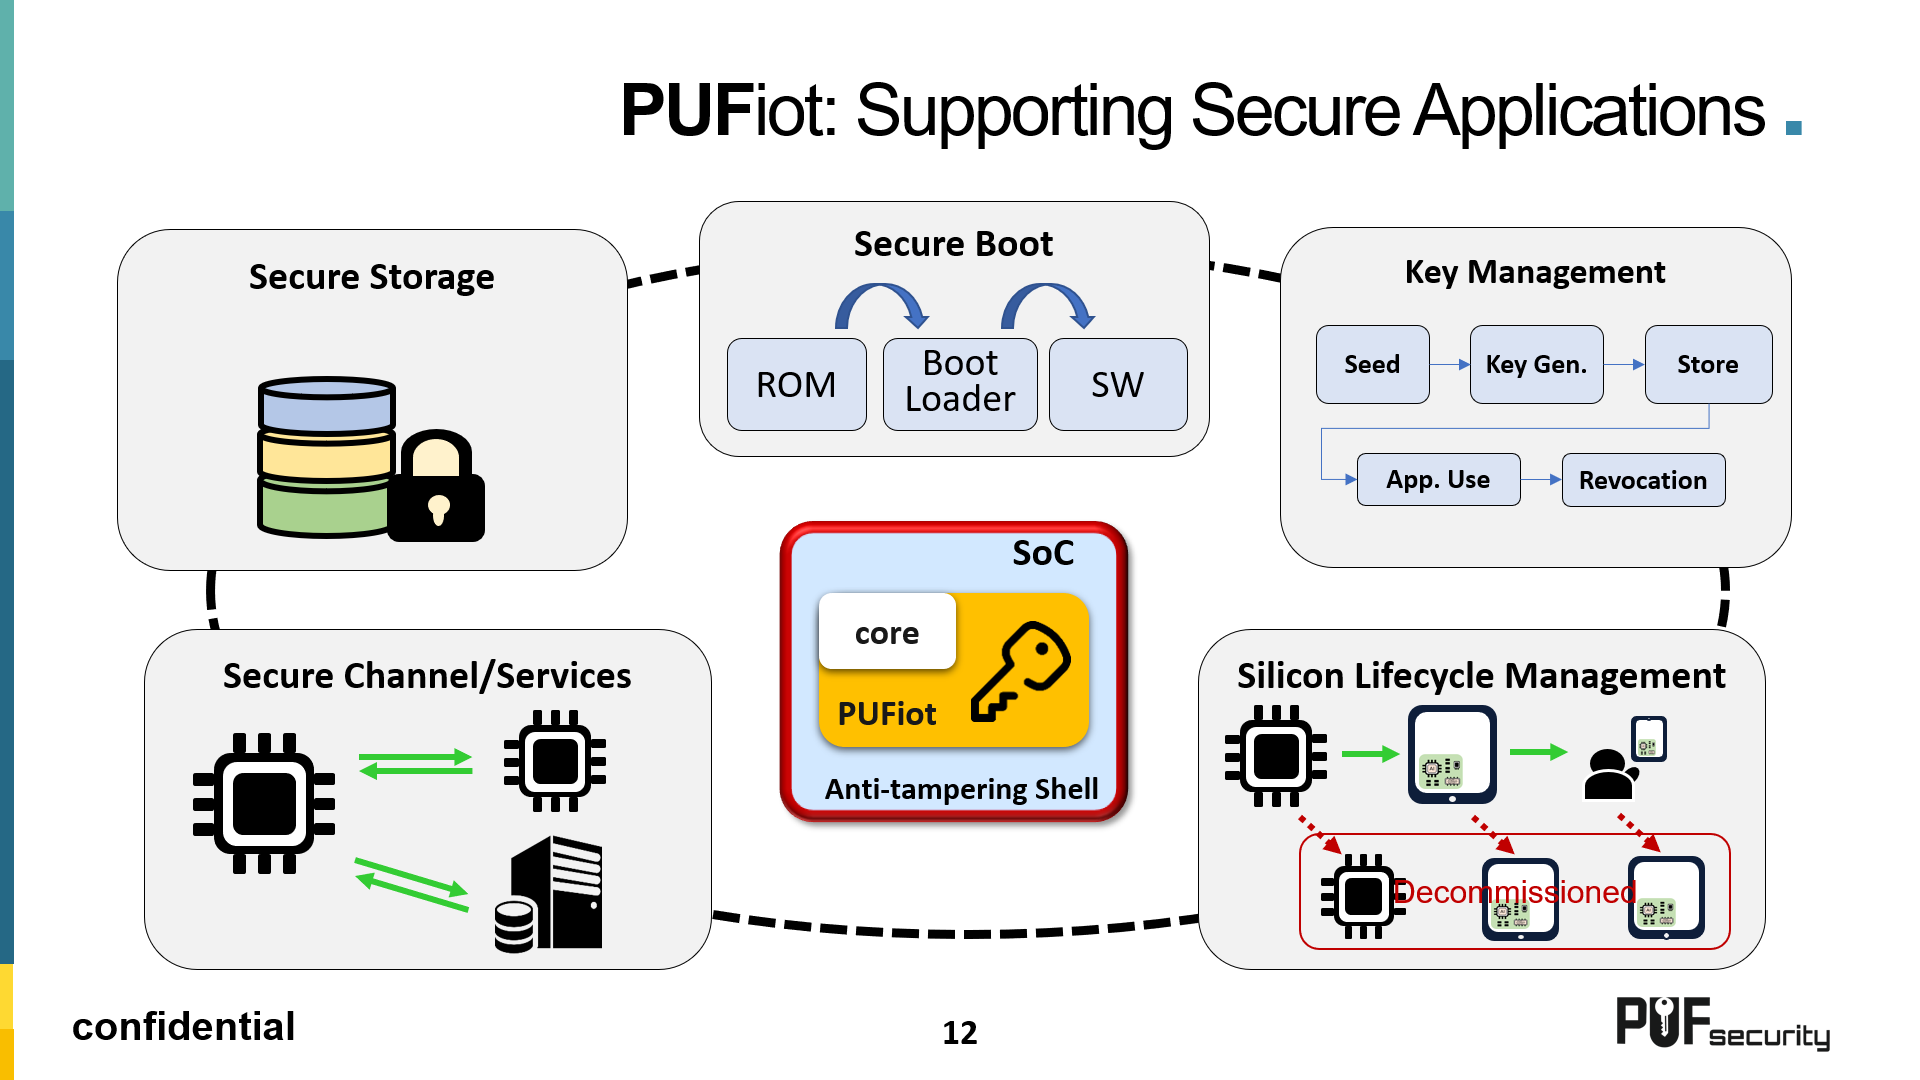 PUFiot Applications